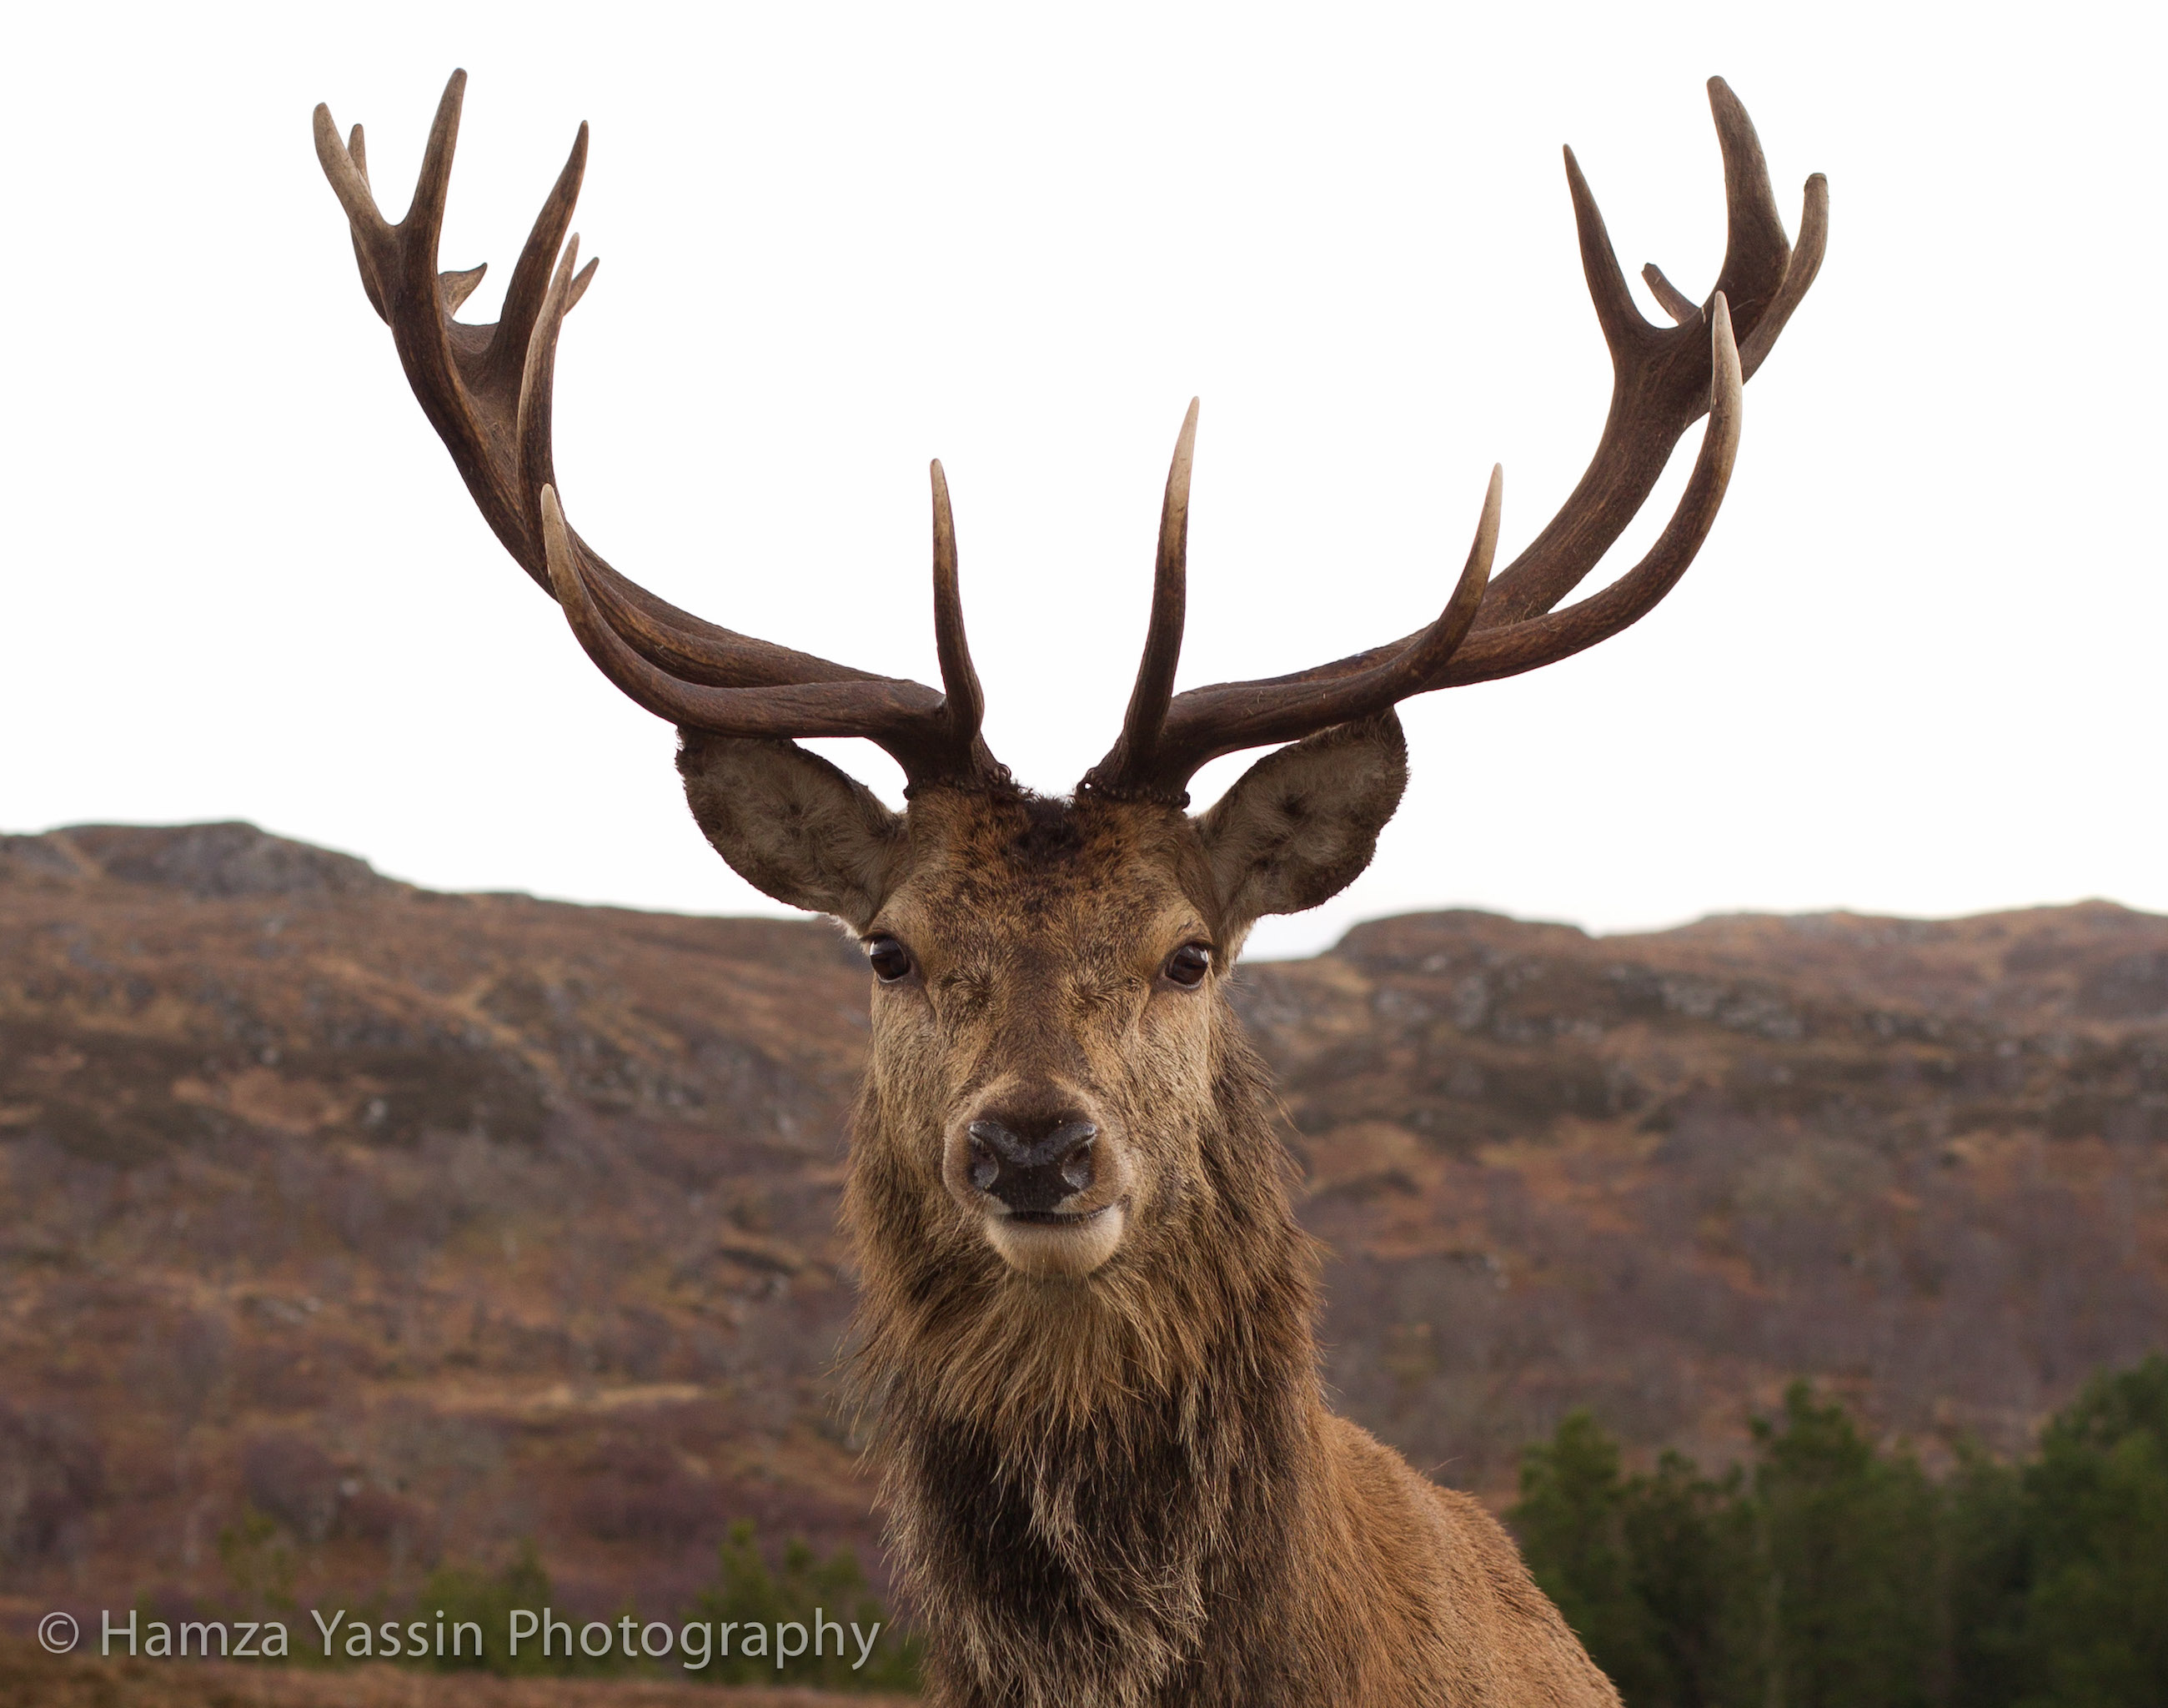 A red deer stag.